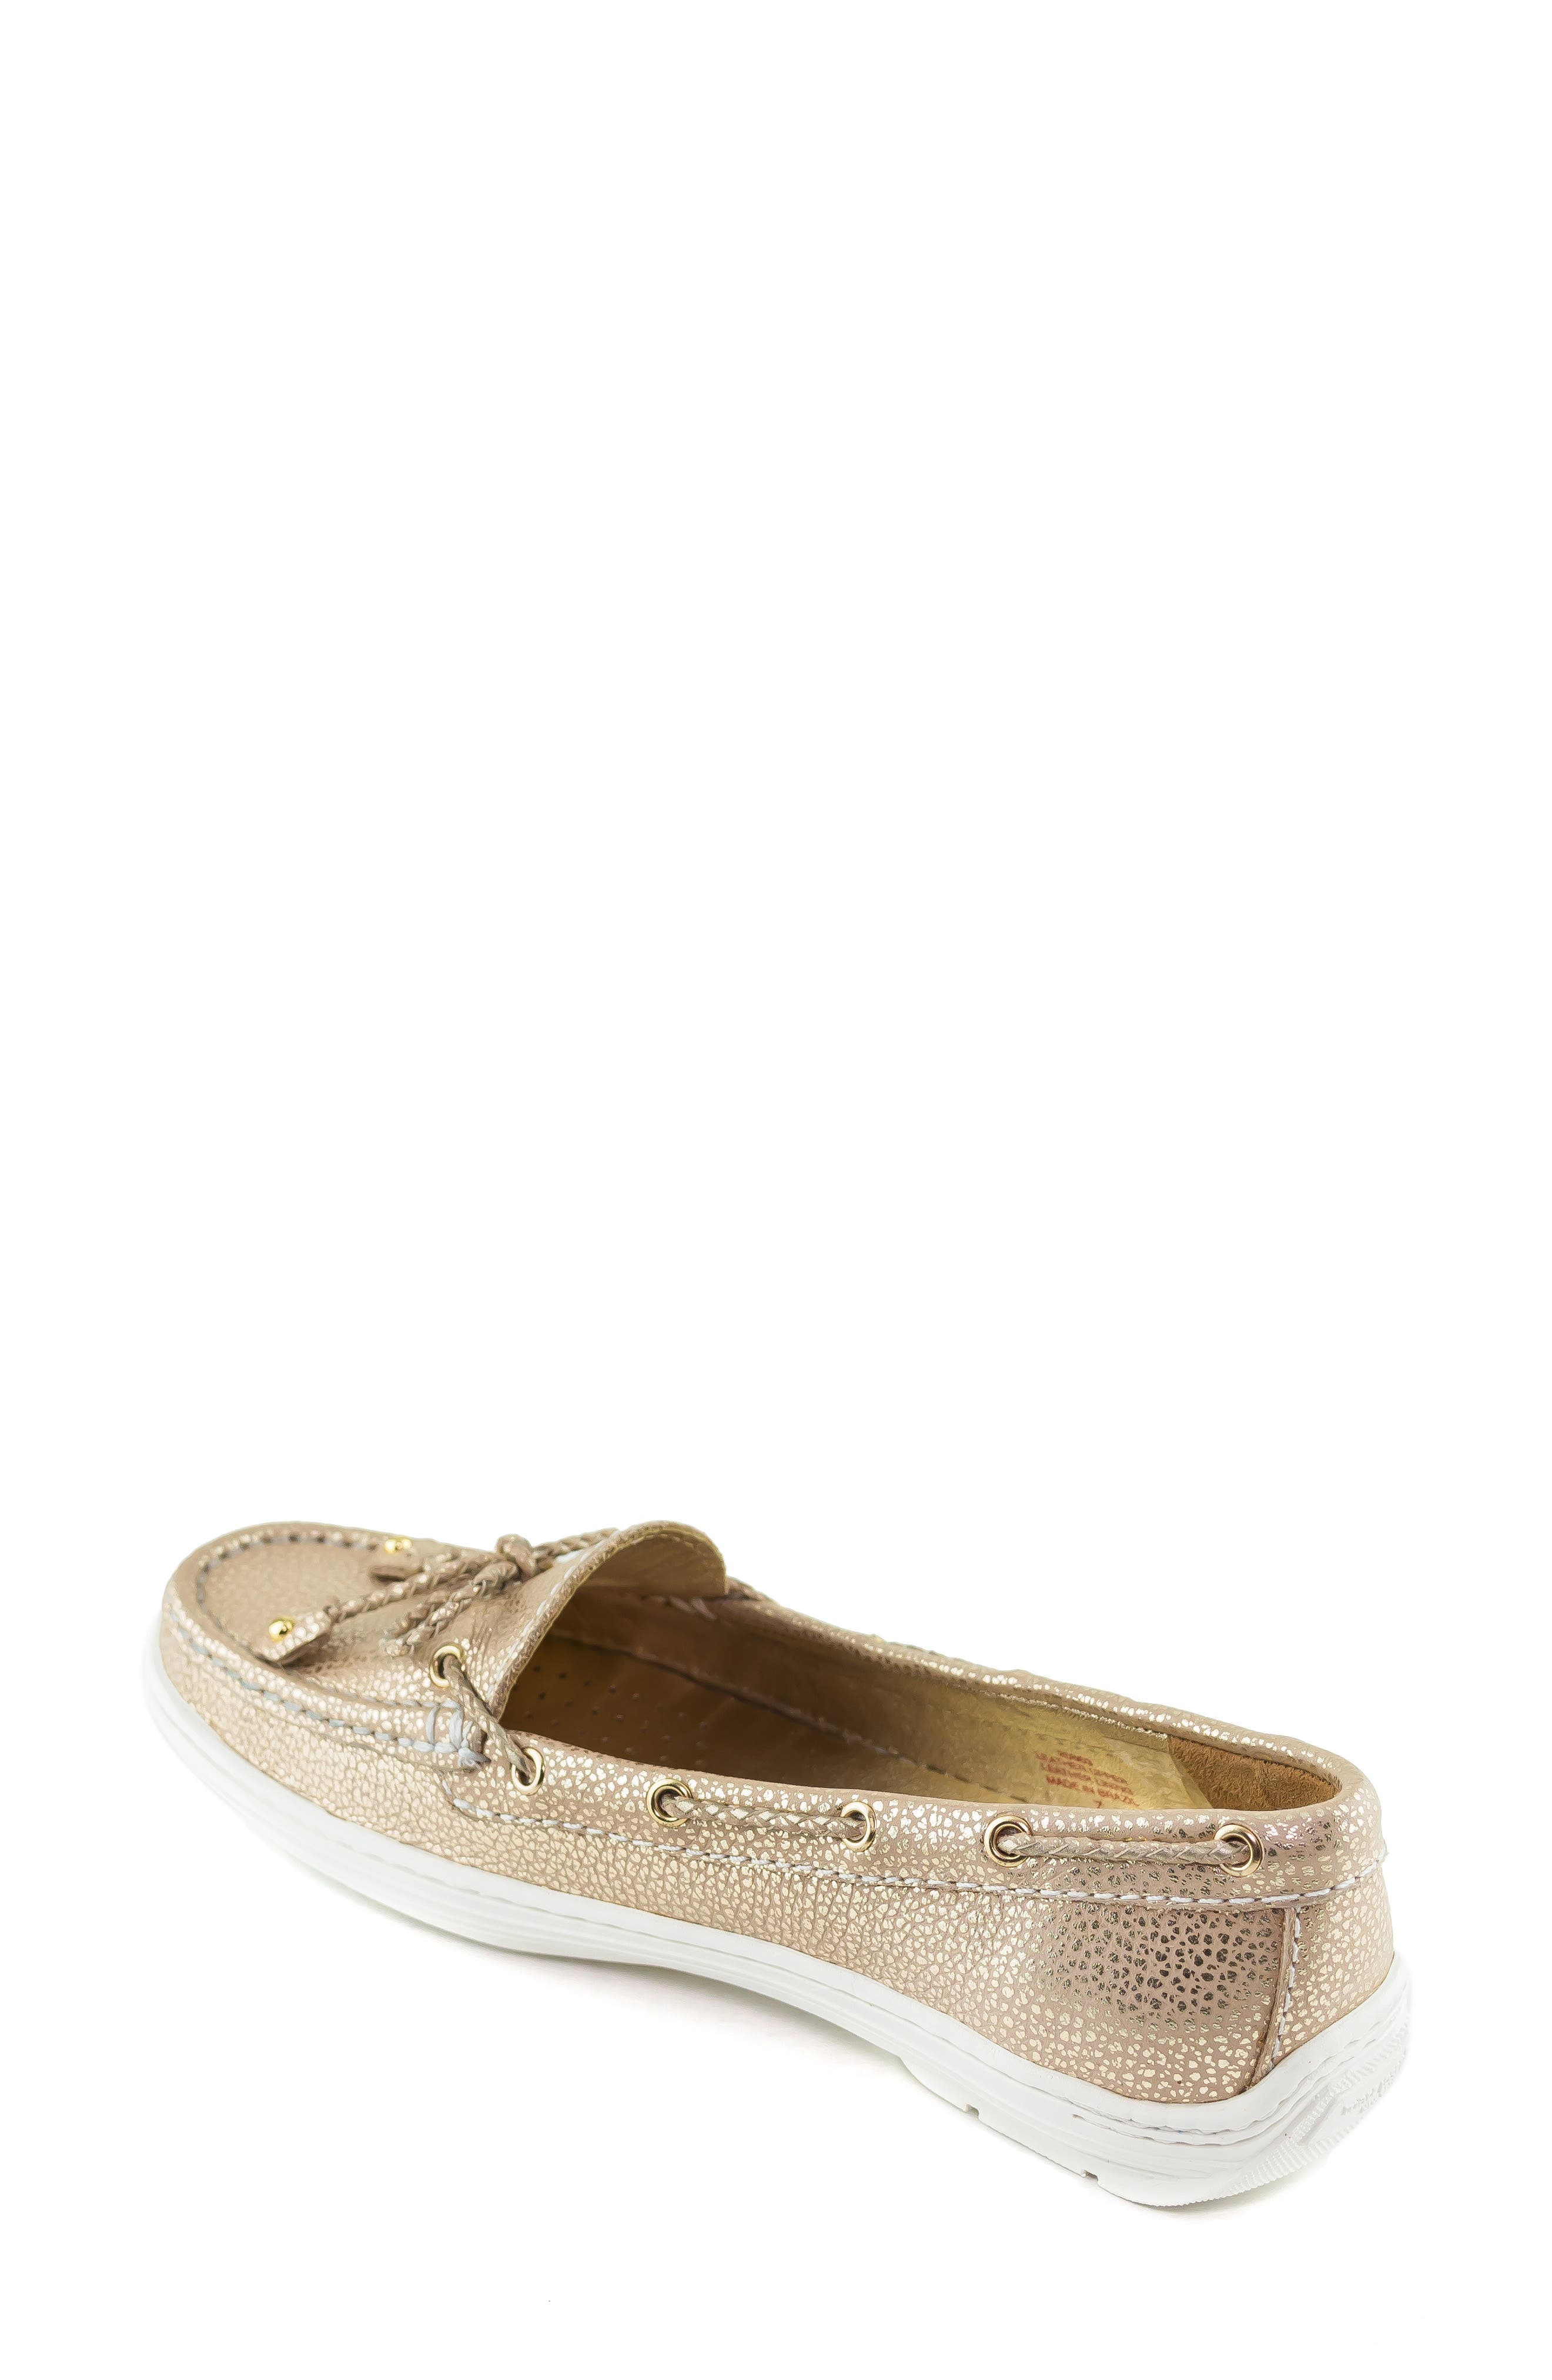 MARC JOSEPH NEW YORK, Pacific Loafer, Alternate thumbnail 2, color, GOLD LEATHER